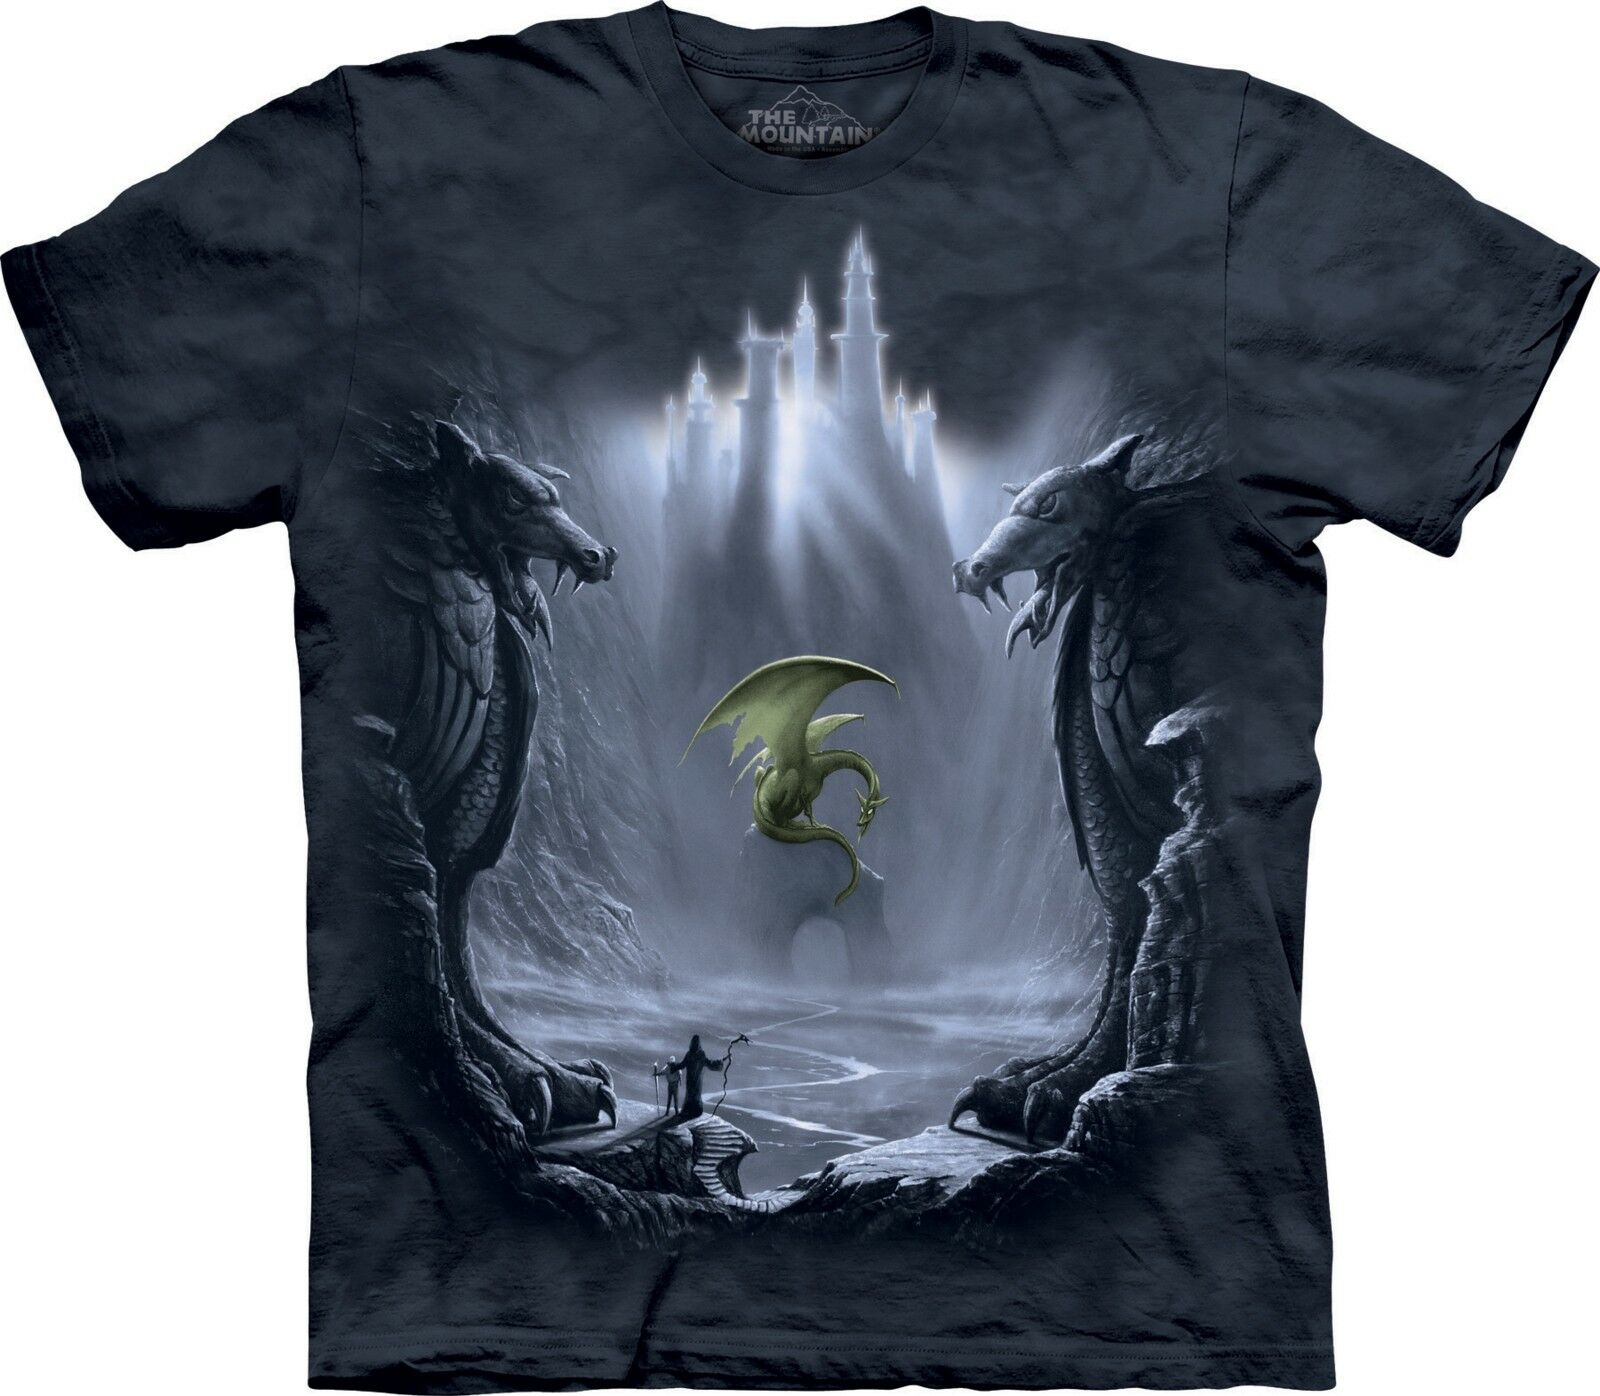 Lost Valley Dragons T Shirt Adult Unisex The Mountain